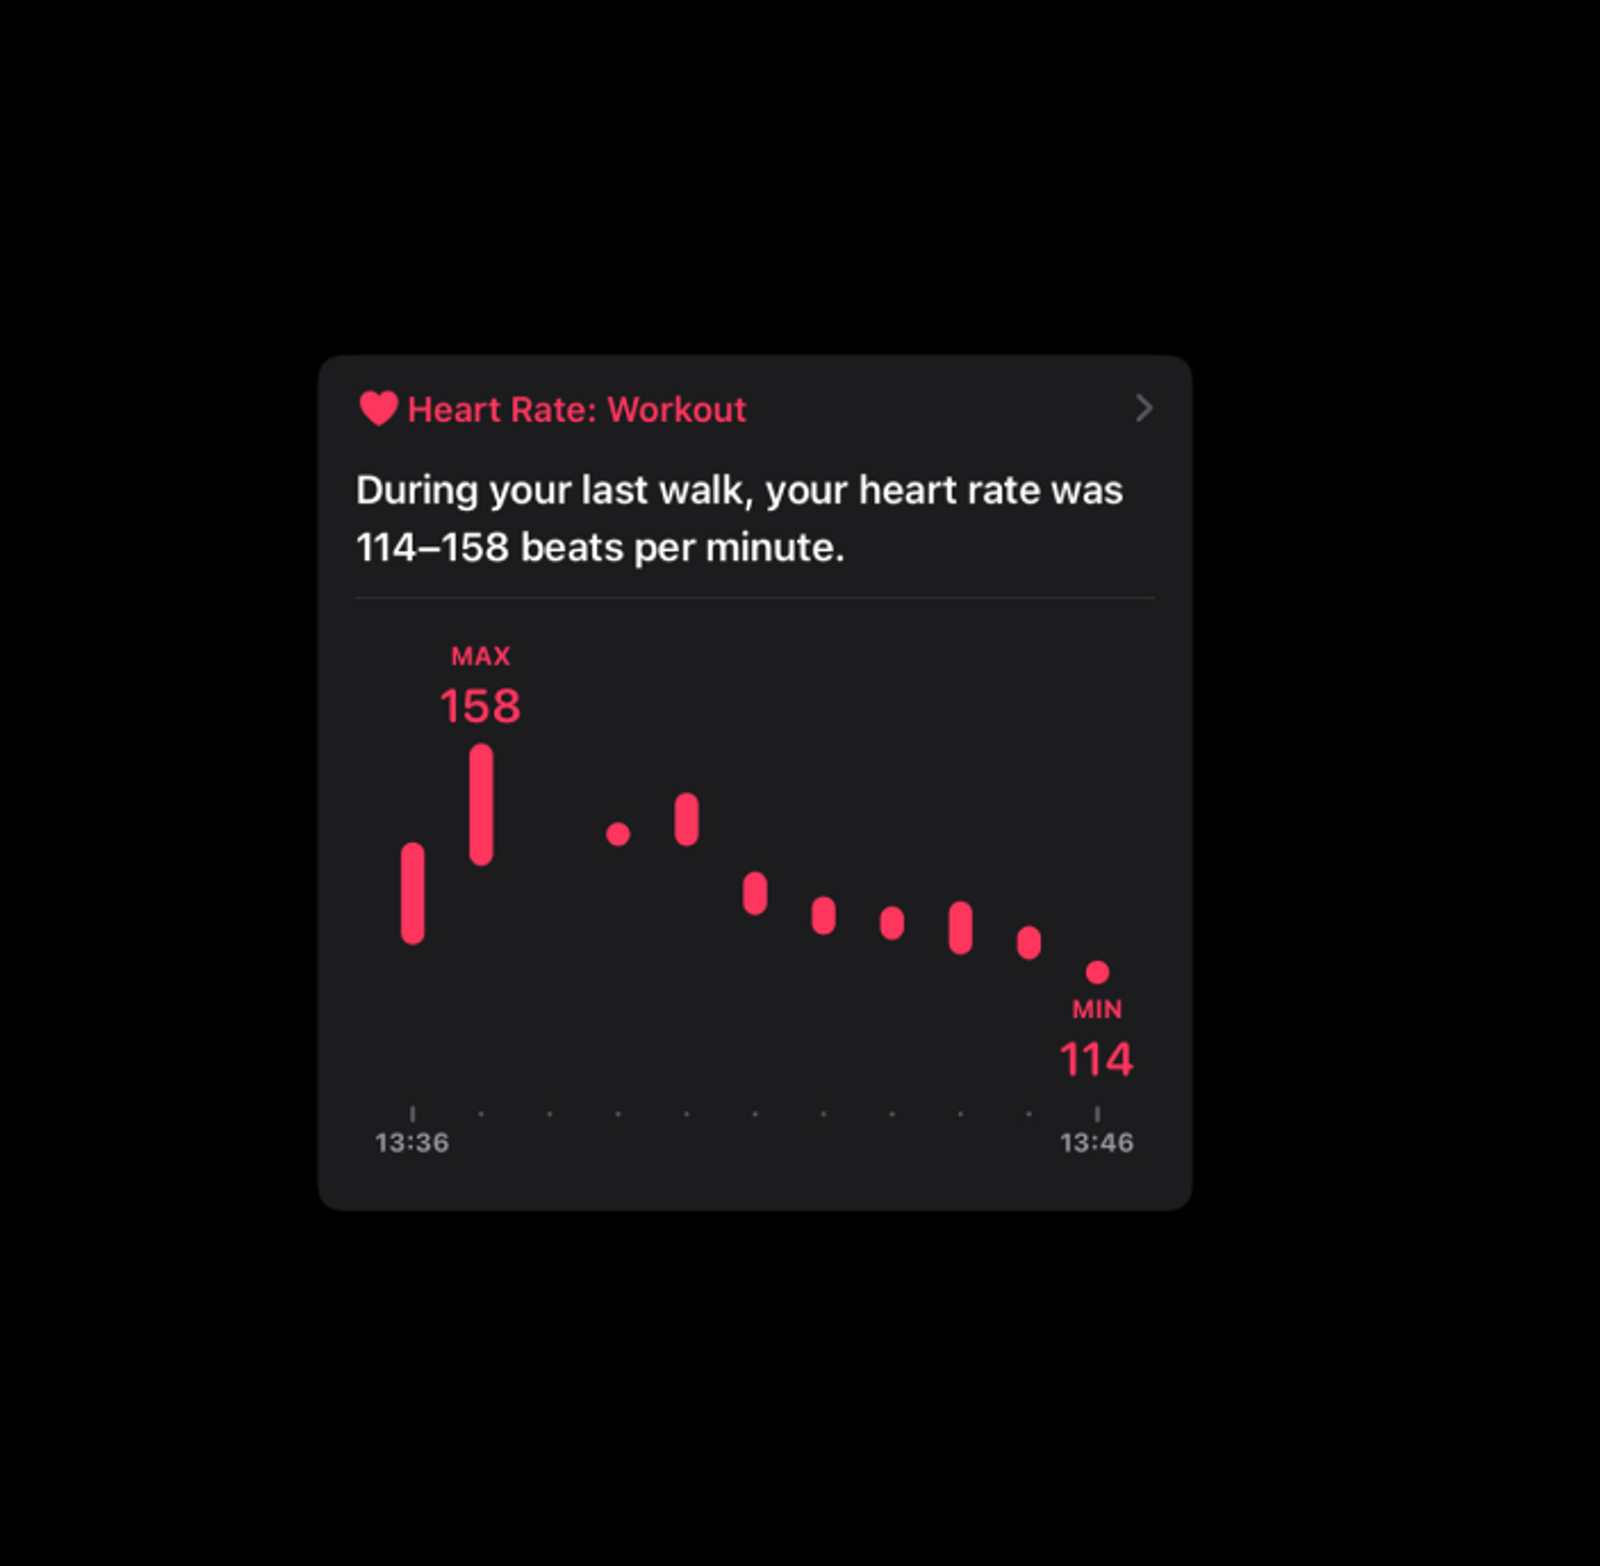 heart rate: workout card, during your last walk, your heart rate was 114-158 beats per minute, bar chart underneath